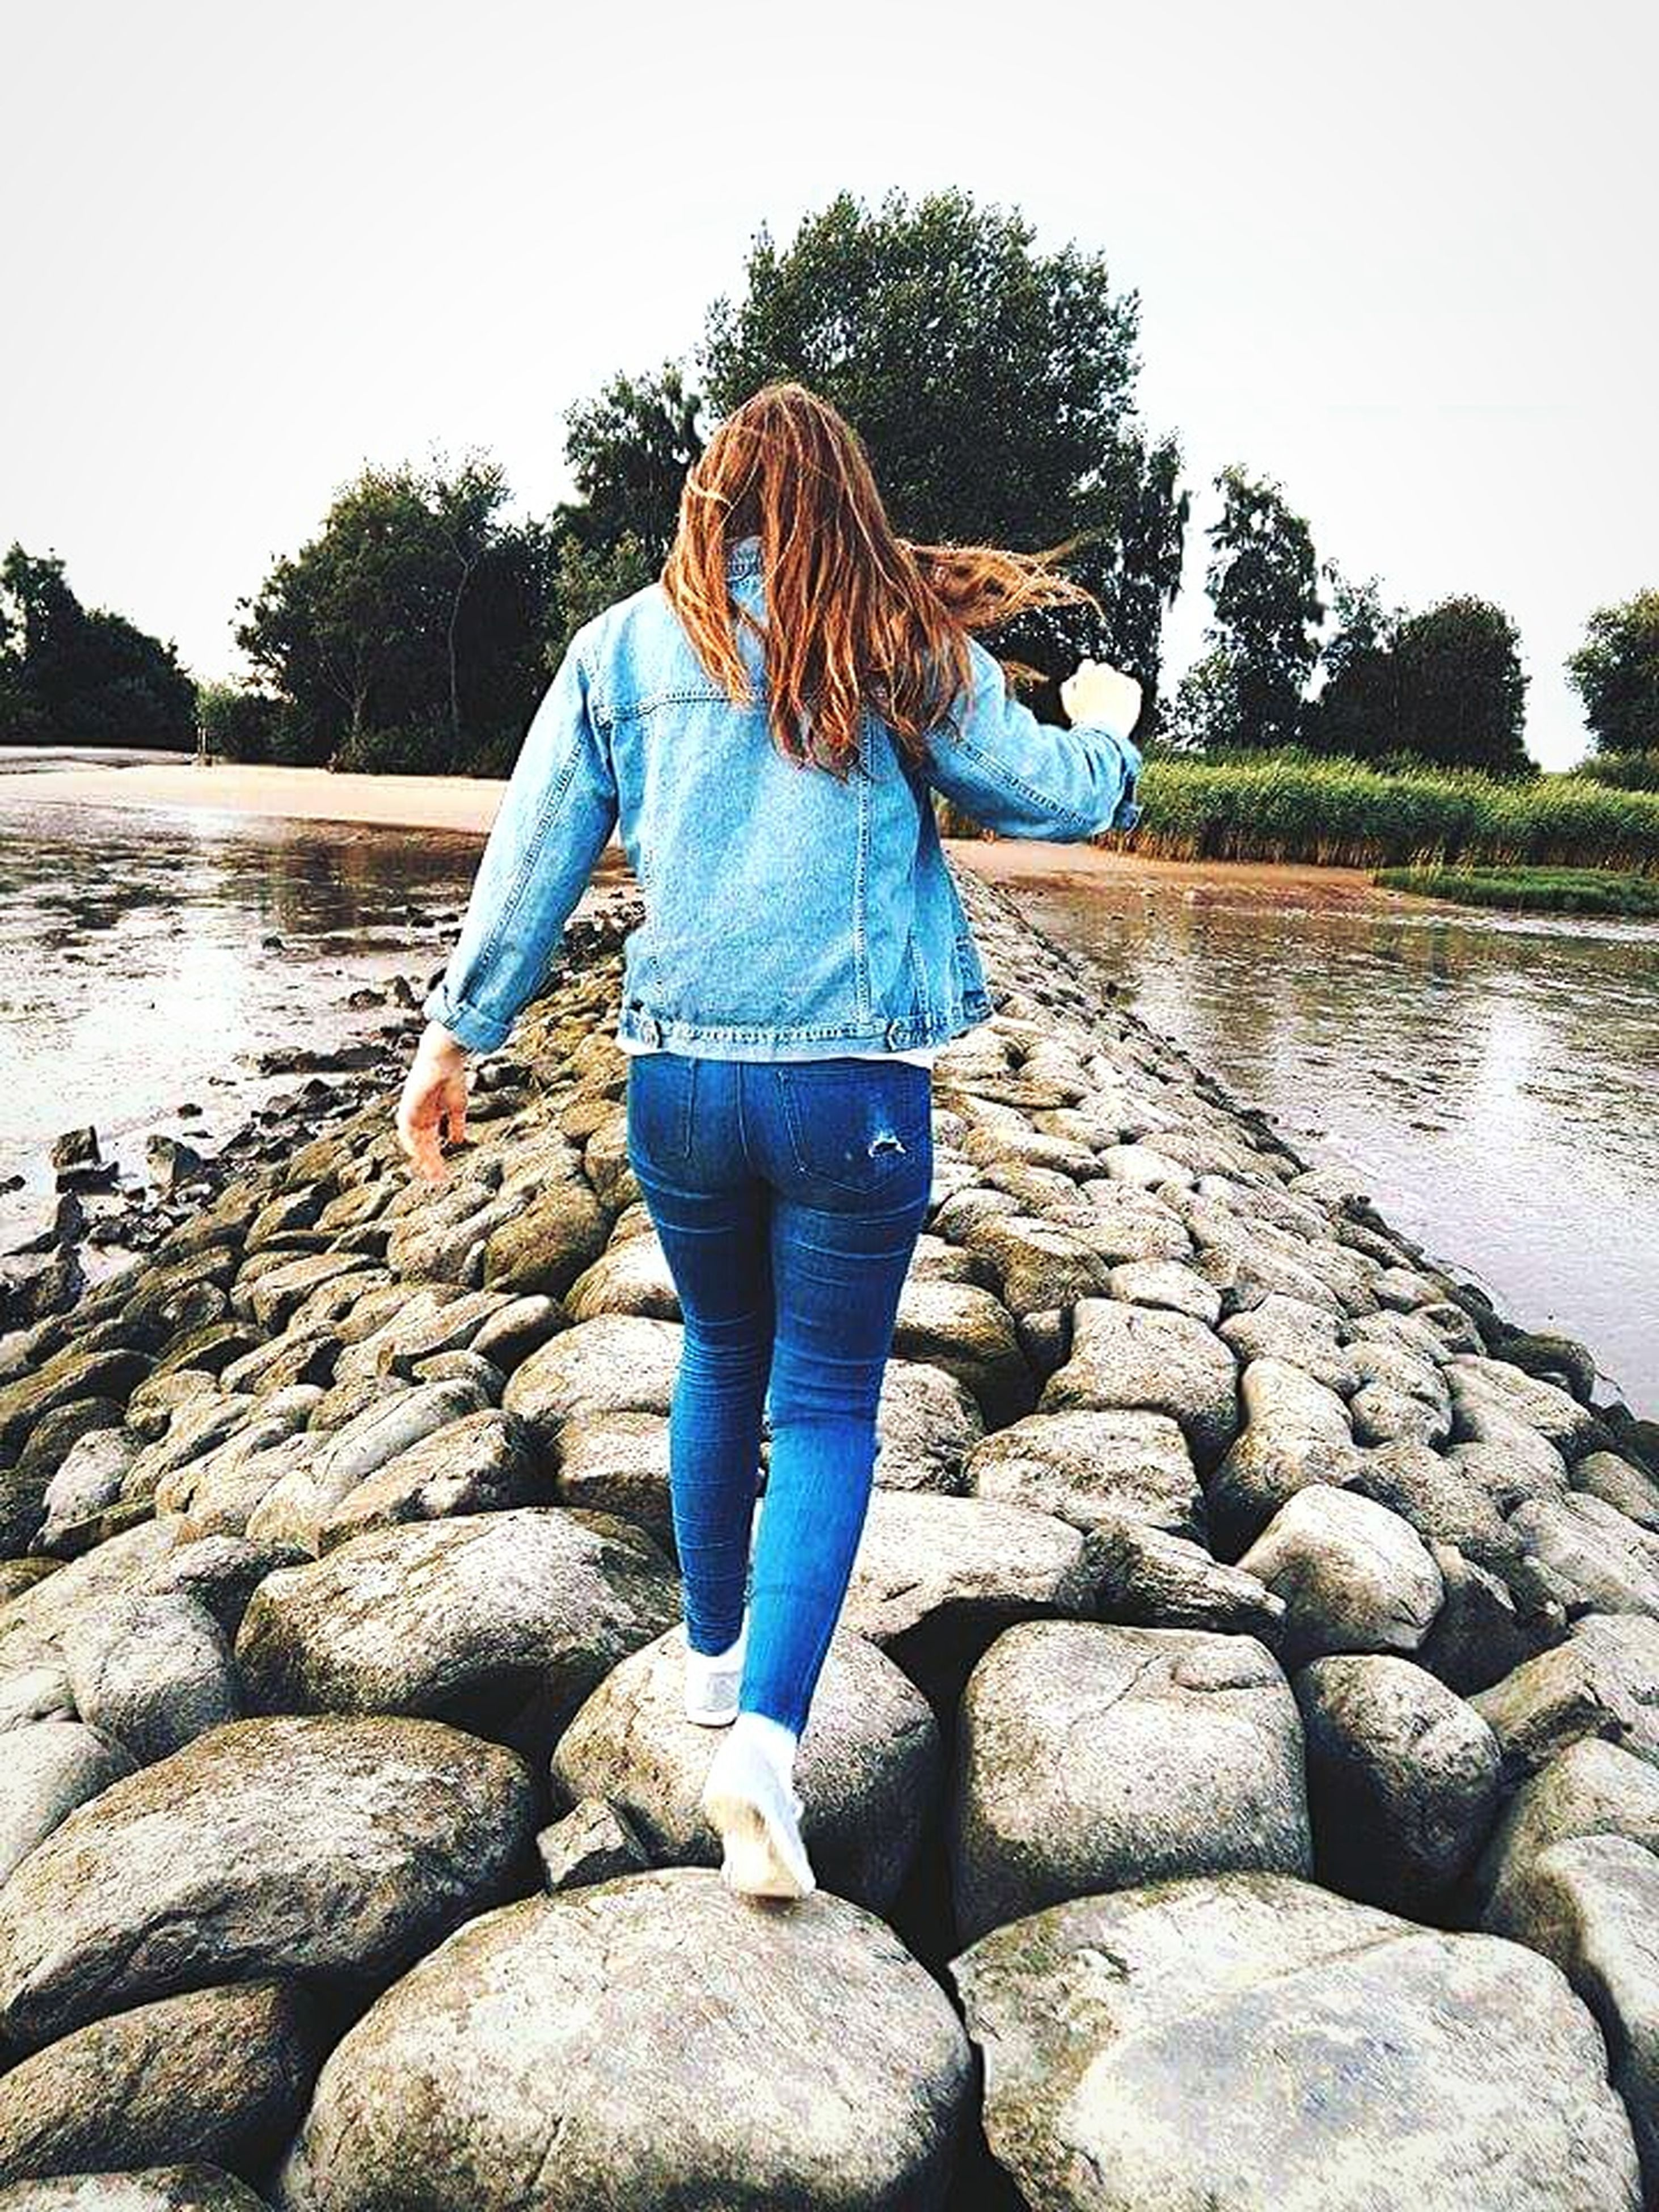 water, lifestyles, rear view, full length, casual clothing, standing, leisure activity, rock - object, lake, tree, person, nature, tranquility, tranquil scene, beauty in nature, river, day, clear sky